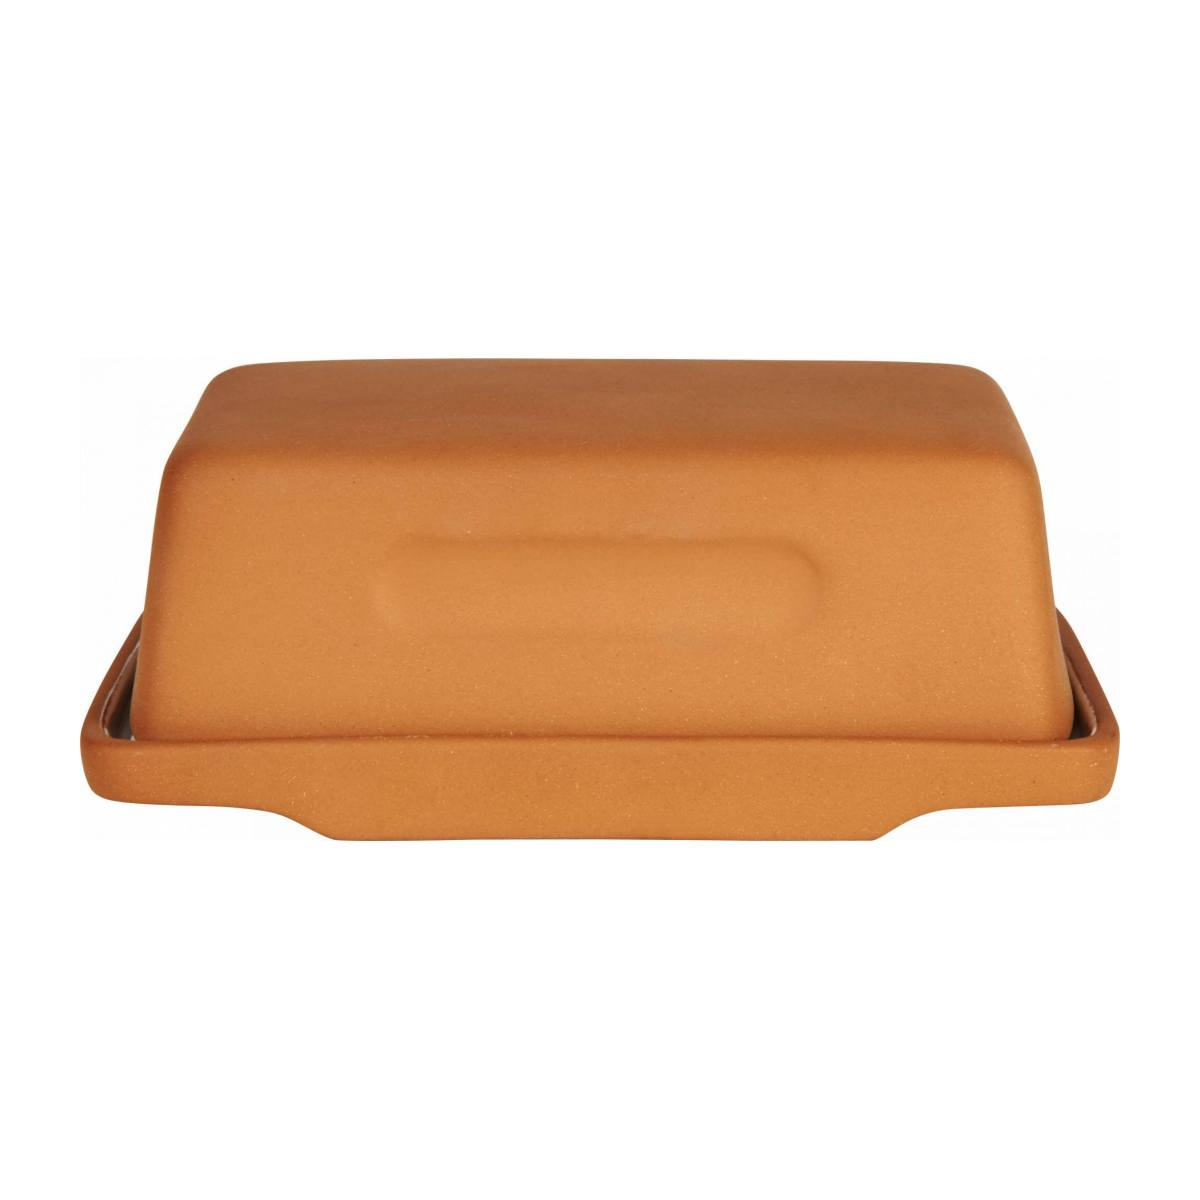 Butter dish n°2